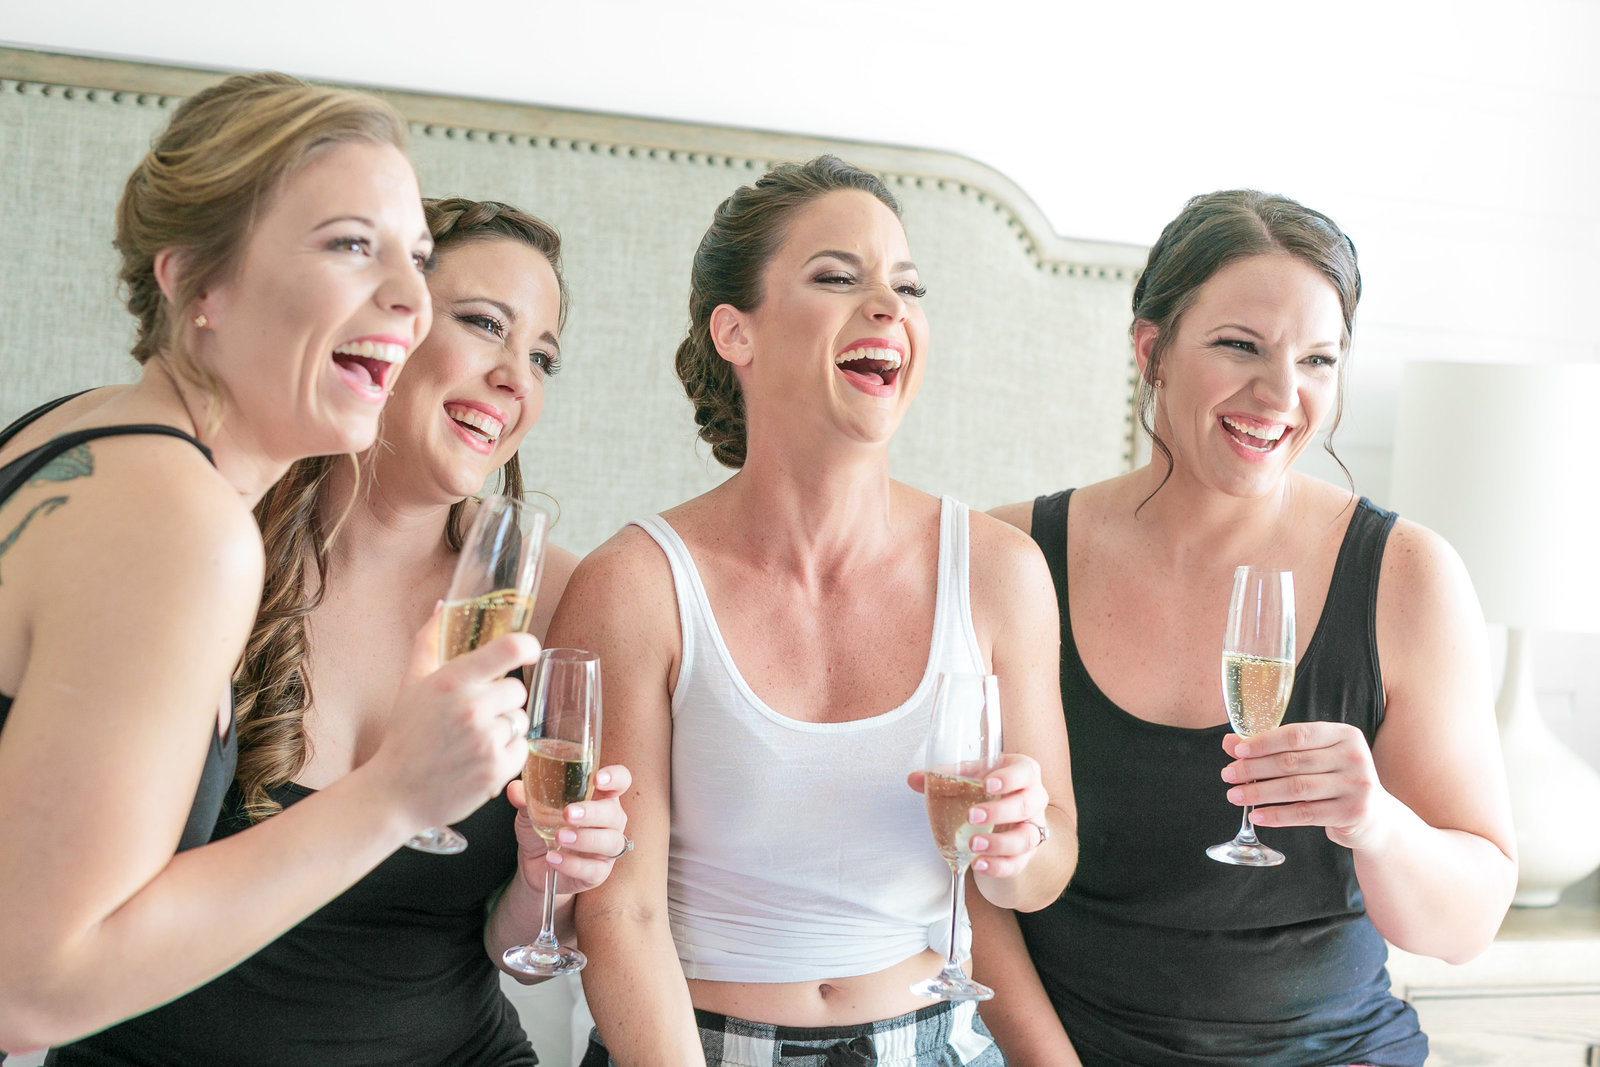 Girls sitting on the bed laughing with wine glasses in their hands